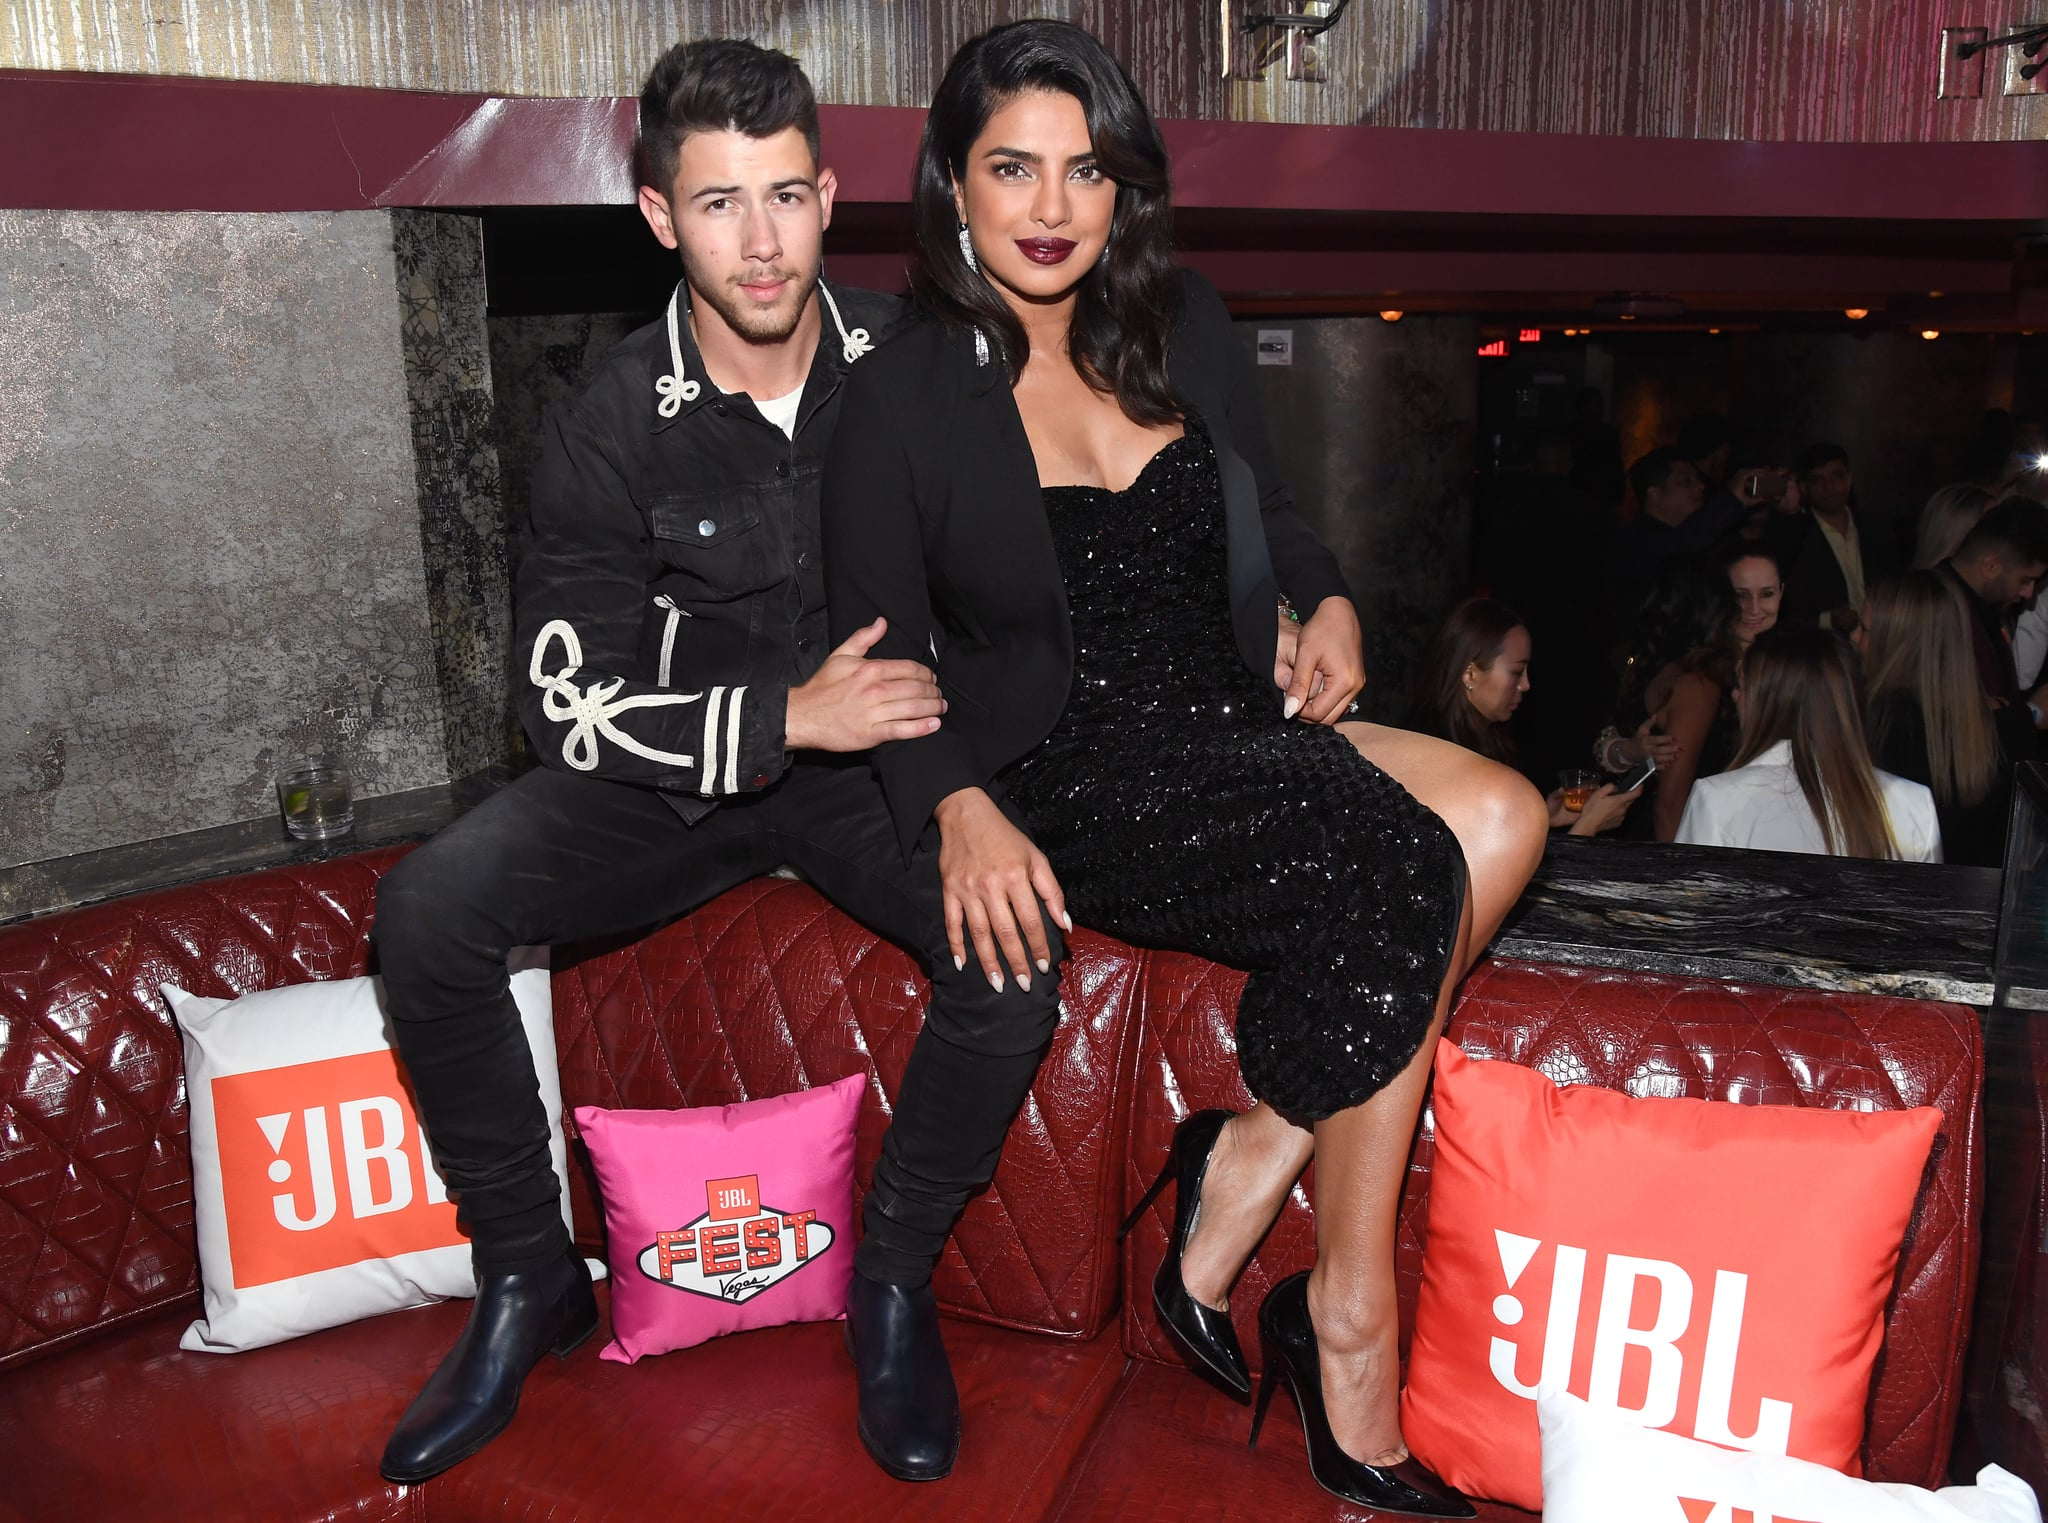 LAS VEGAS, NEVADA - OCTOBER 10: Surprise guest Nick Jonas, left, and Priyanka Chopra Jonas attend CLUB JBL, one of the many events during the 3rd annual JBL Fest, an exclusive, three-day music experience hosted by JBL at  at Jewel Nightclub at the Aria Resort & Casino on October 10, 2019 in Las Vegas, Nevada. (Photo by Kevin Mazur/Getty Images for JBL)